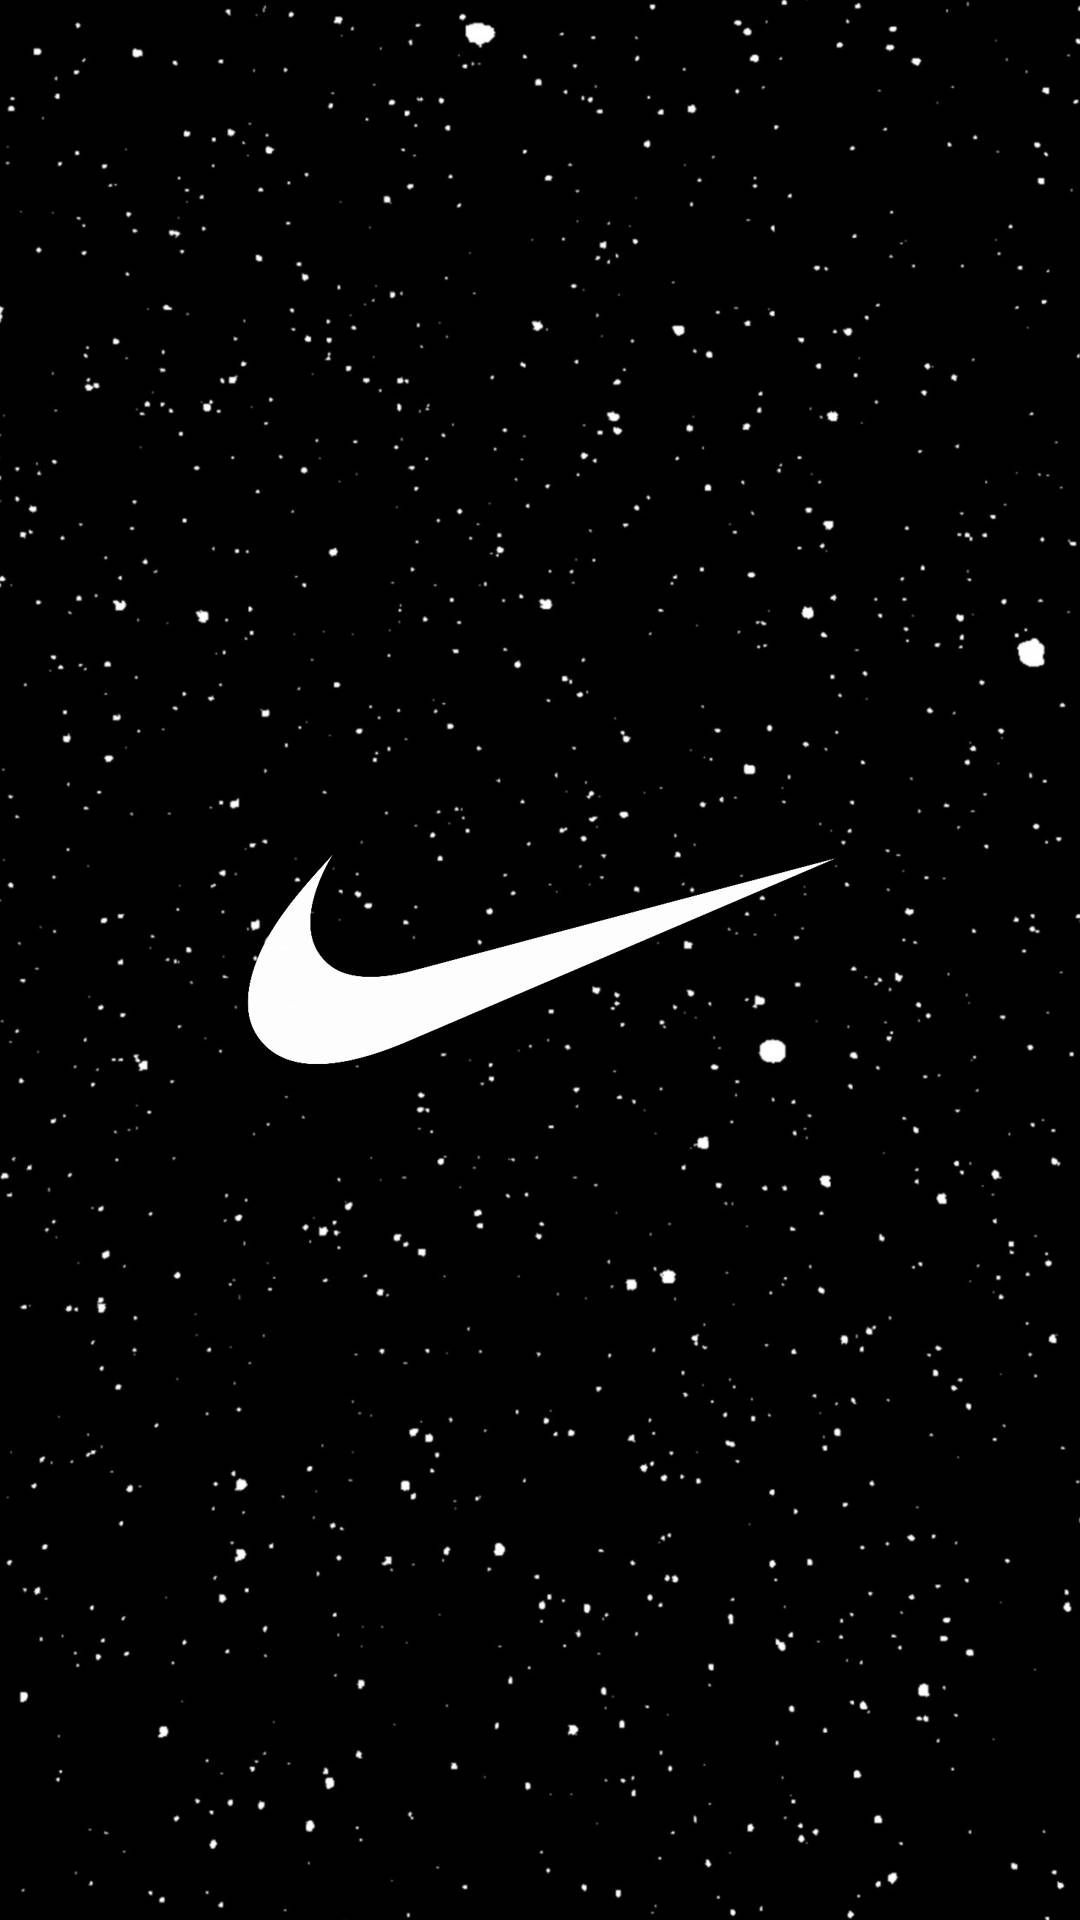 Nike Swoosh iPhone Wallpaper